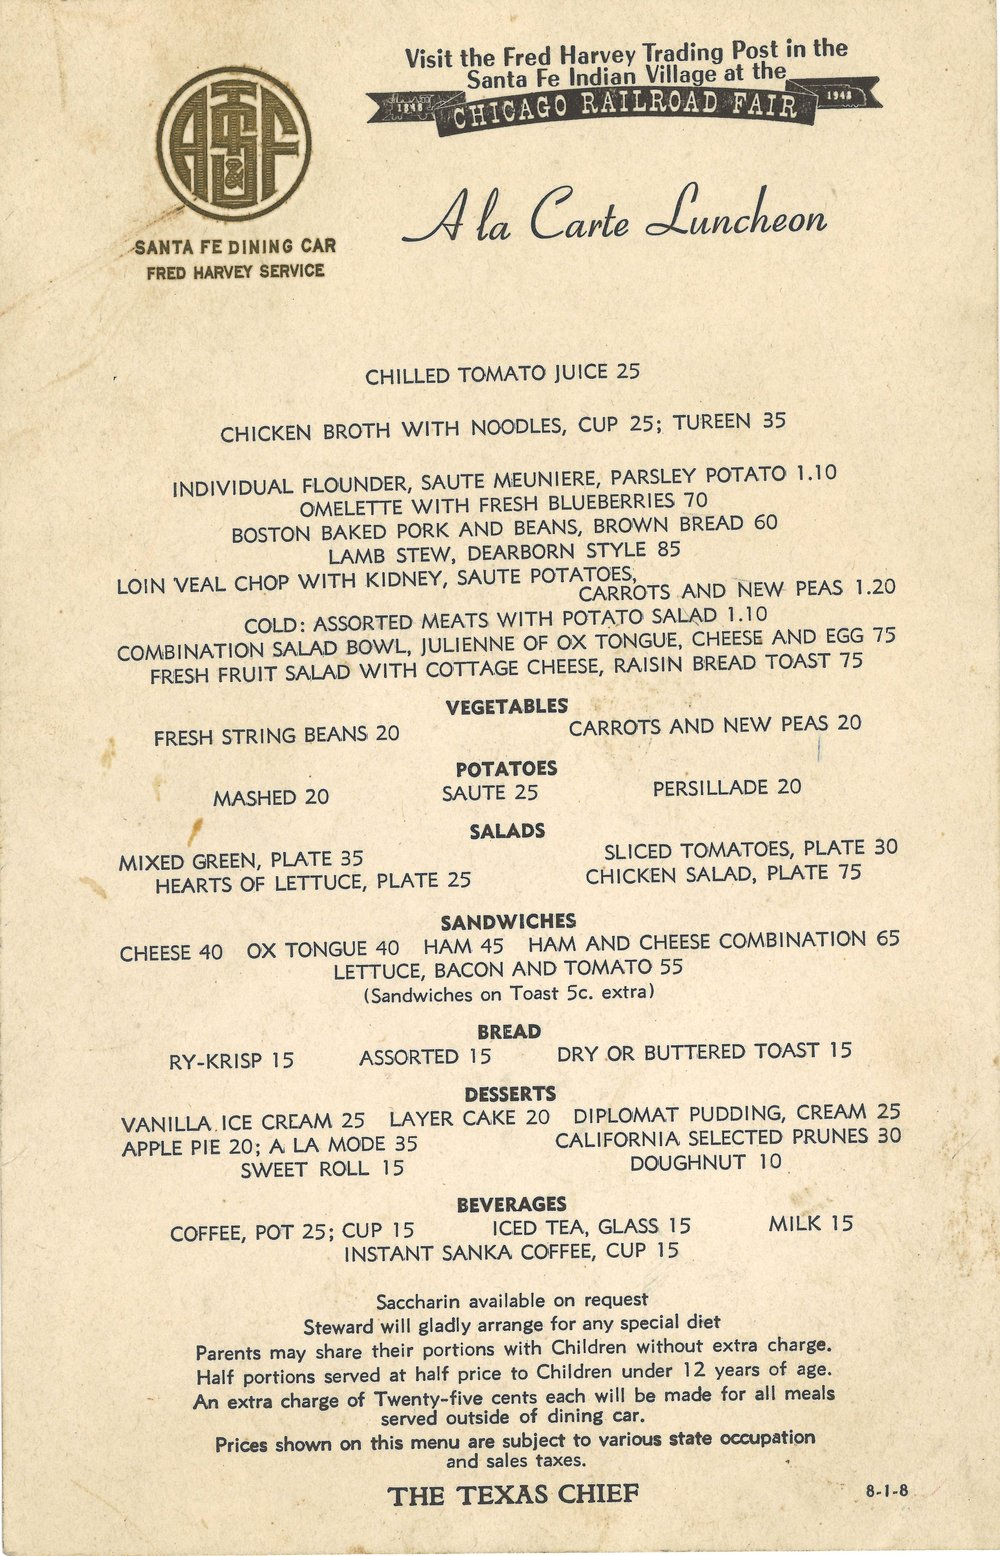 Santa Fe Chicago Railroad Fair  A La Carte Lunch Menu.jpg